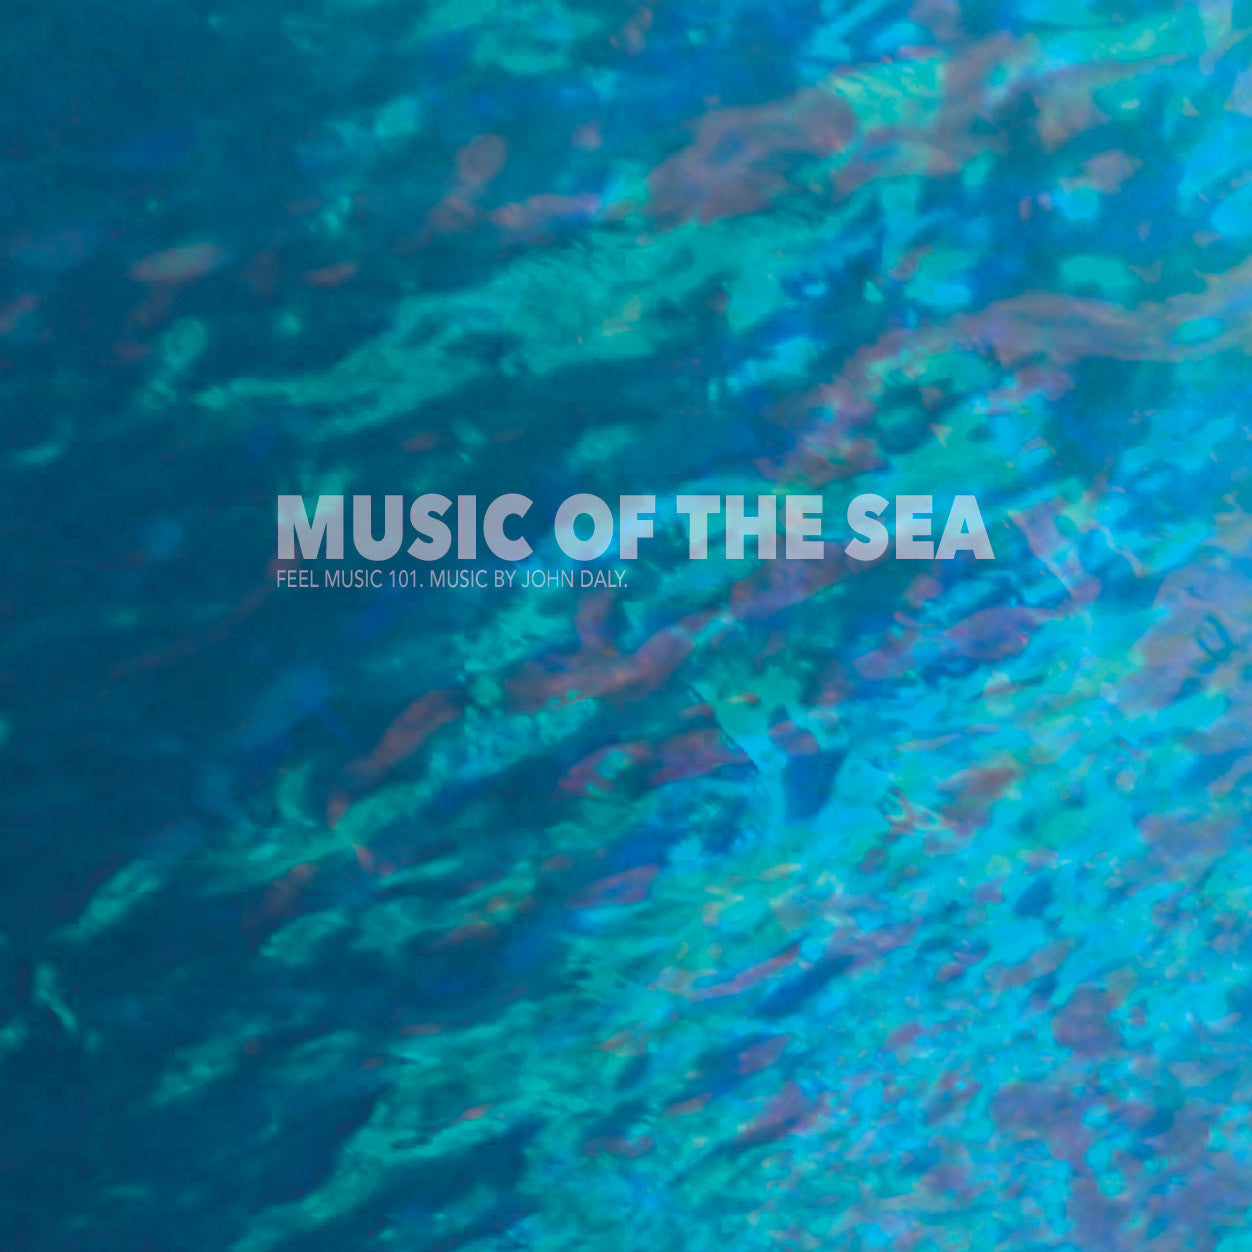 John Daly - Music of the Sea - Unearthed Sounds